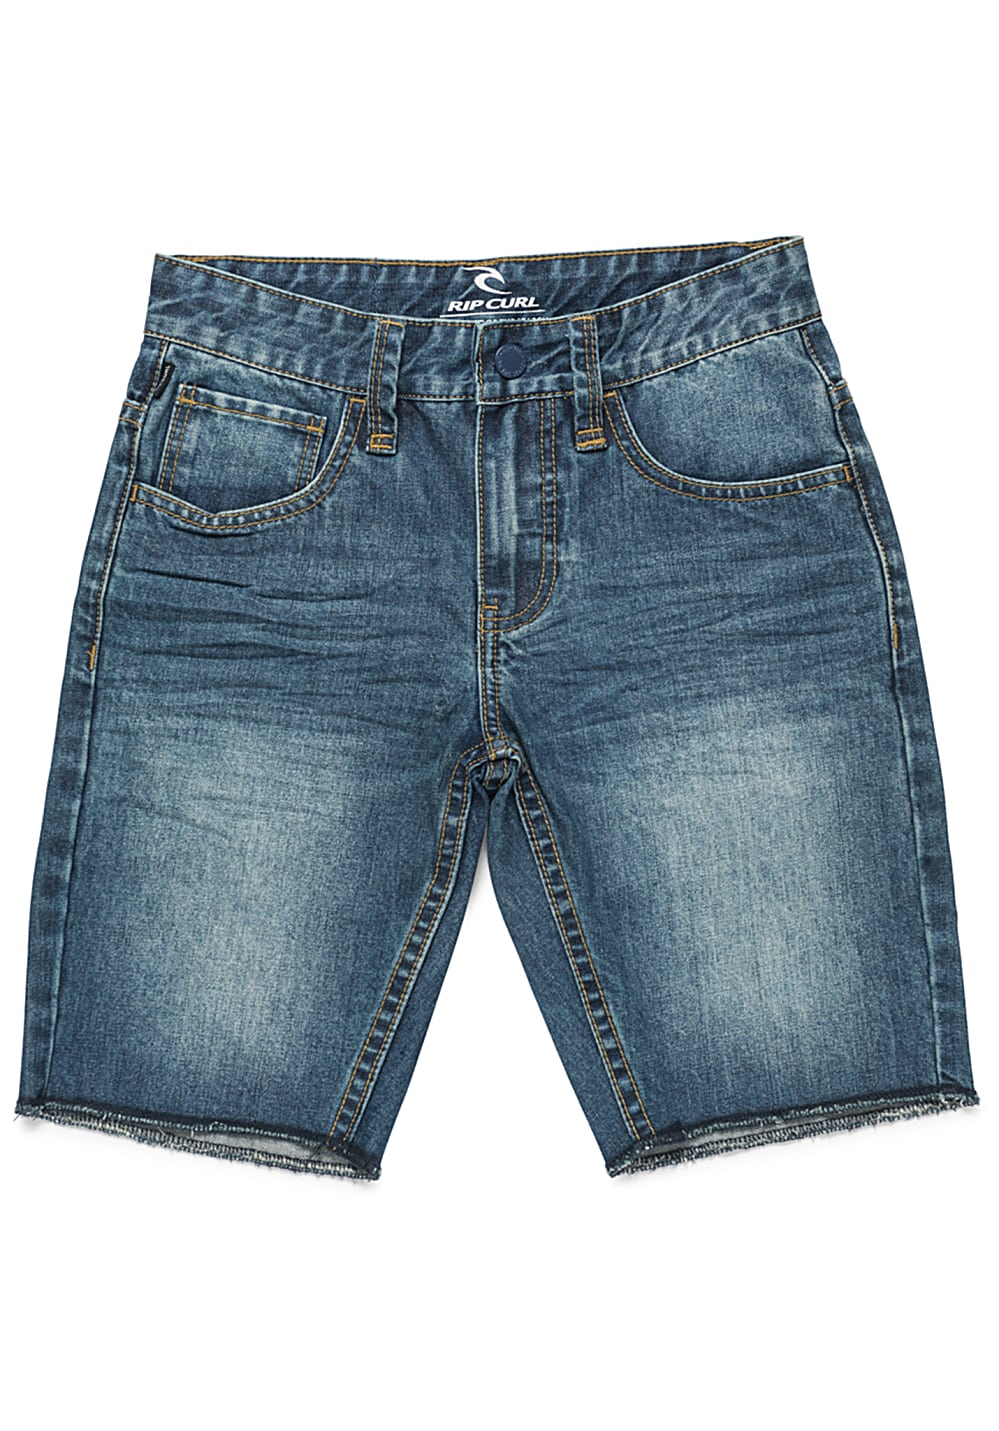 Rip Curl 5 Pocket Denim Shorts - Blau